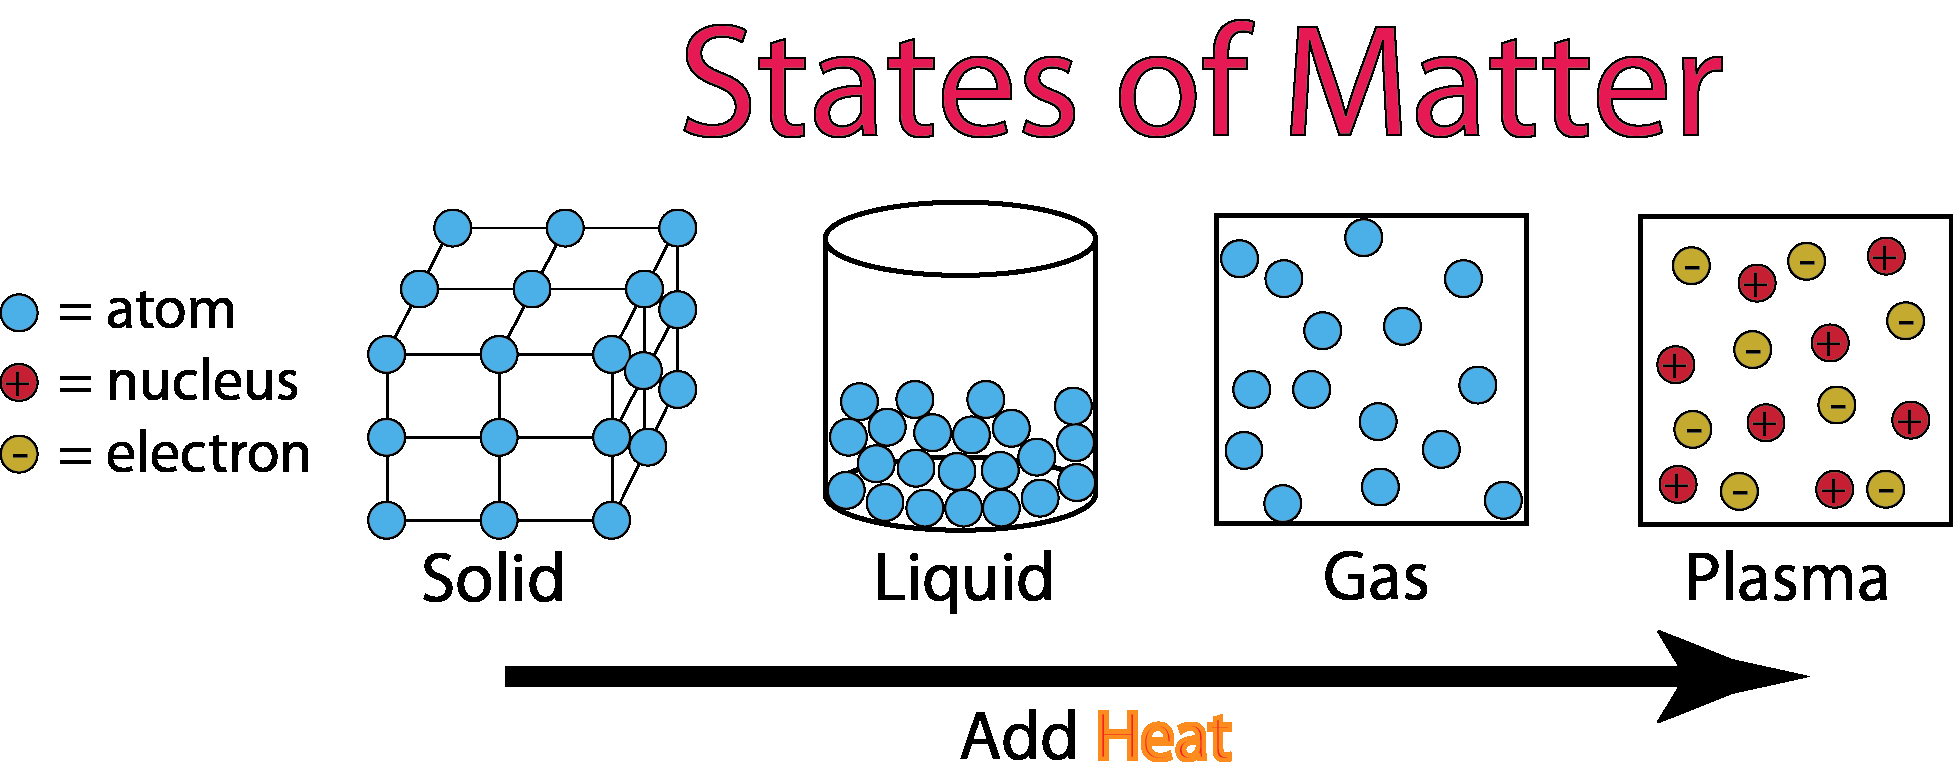 States Of Matter Worksheet Chemistry Best Of Phases Of Matter Chemwiki